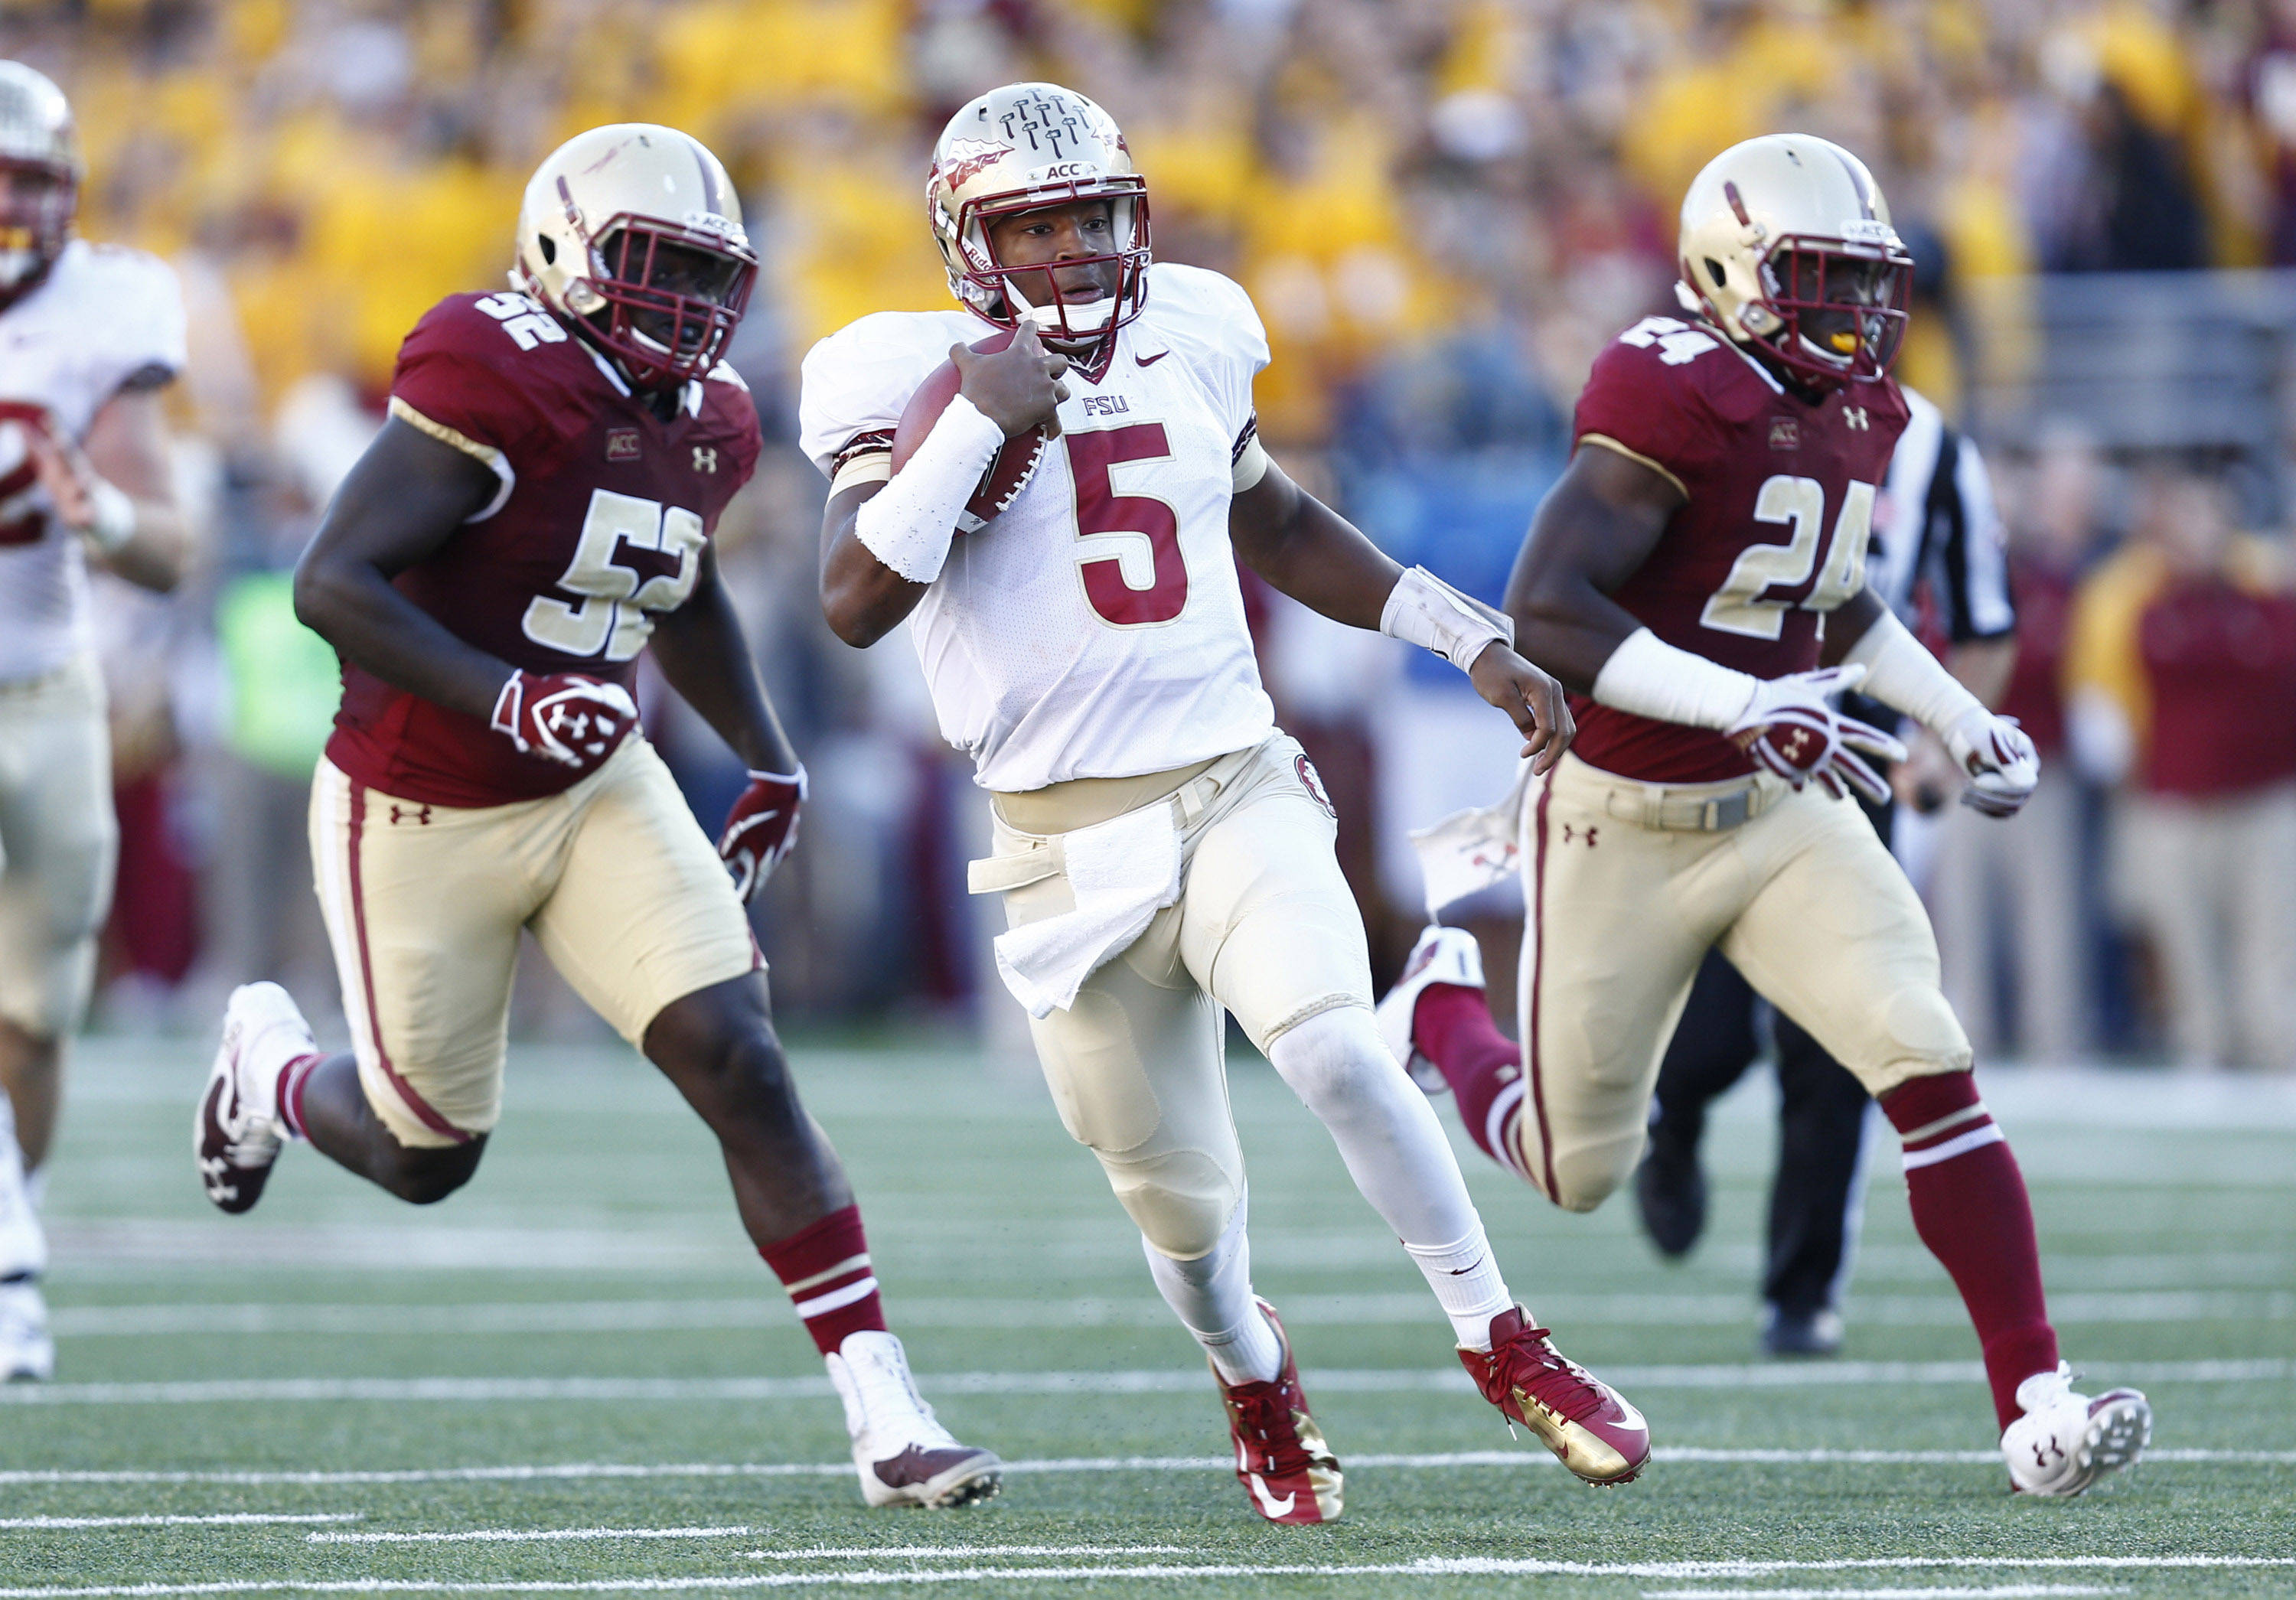 Jameis Winston (5) runs the ball. Mandatory Credit: Mark L. Baer-USA TODAY Sports